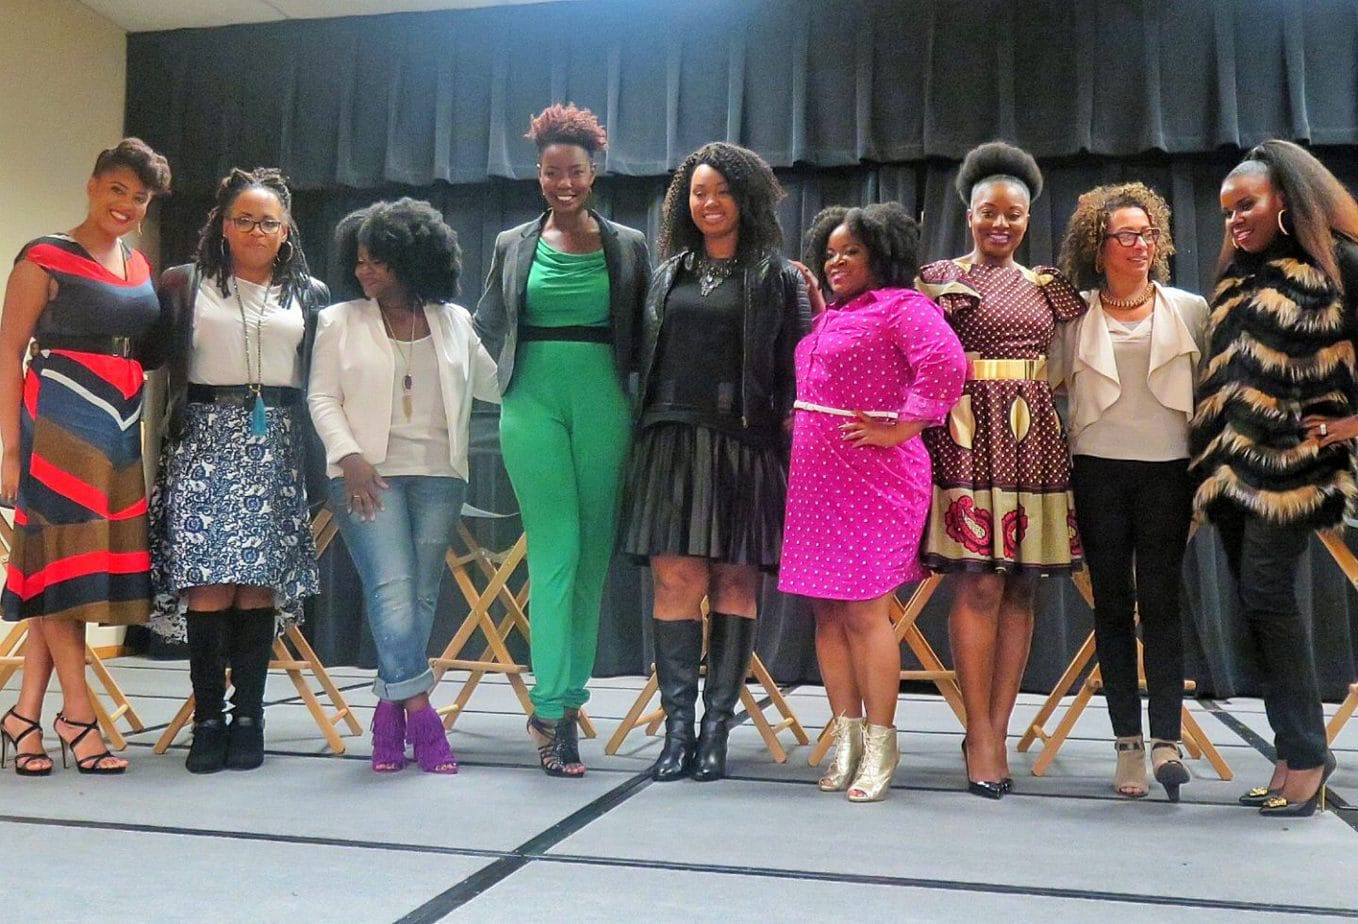 Bella Kinks DFW Natural Hair Expo Periscope Recap: Myleik Teele & POWER Panel Discussion